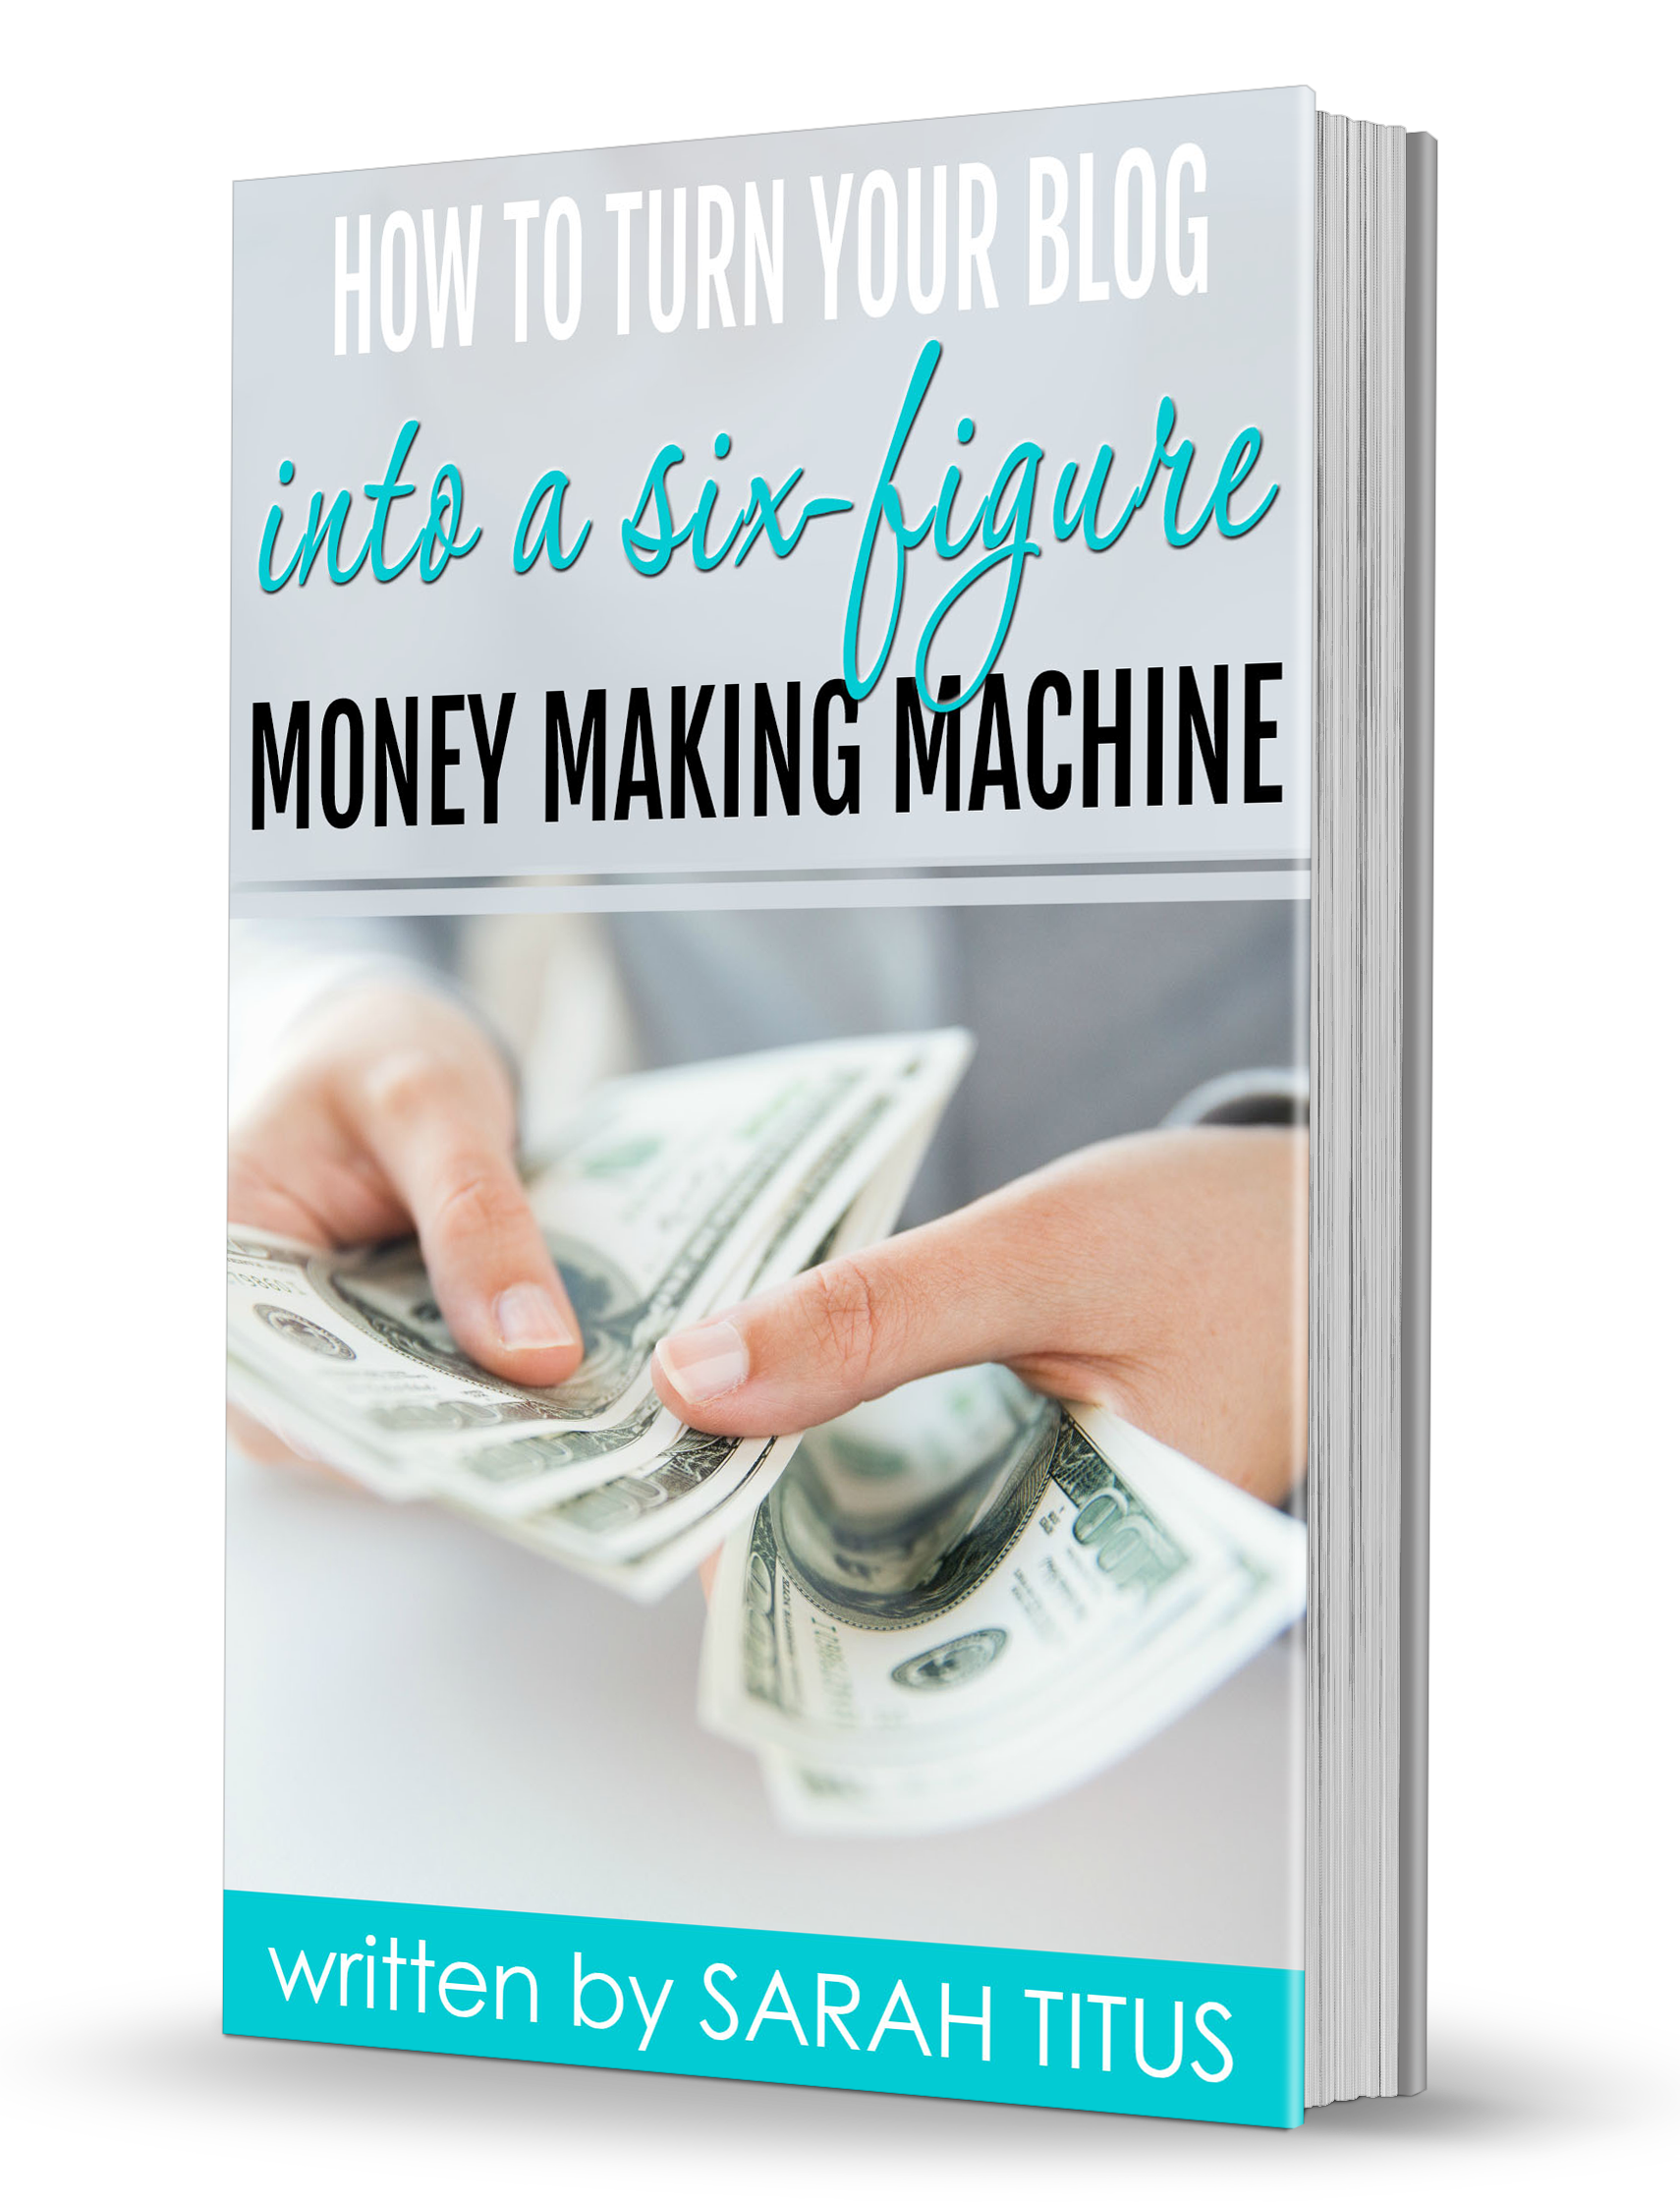 How to Turn Your Blog into a six figure Money Making Machine